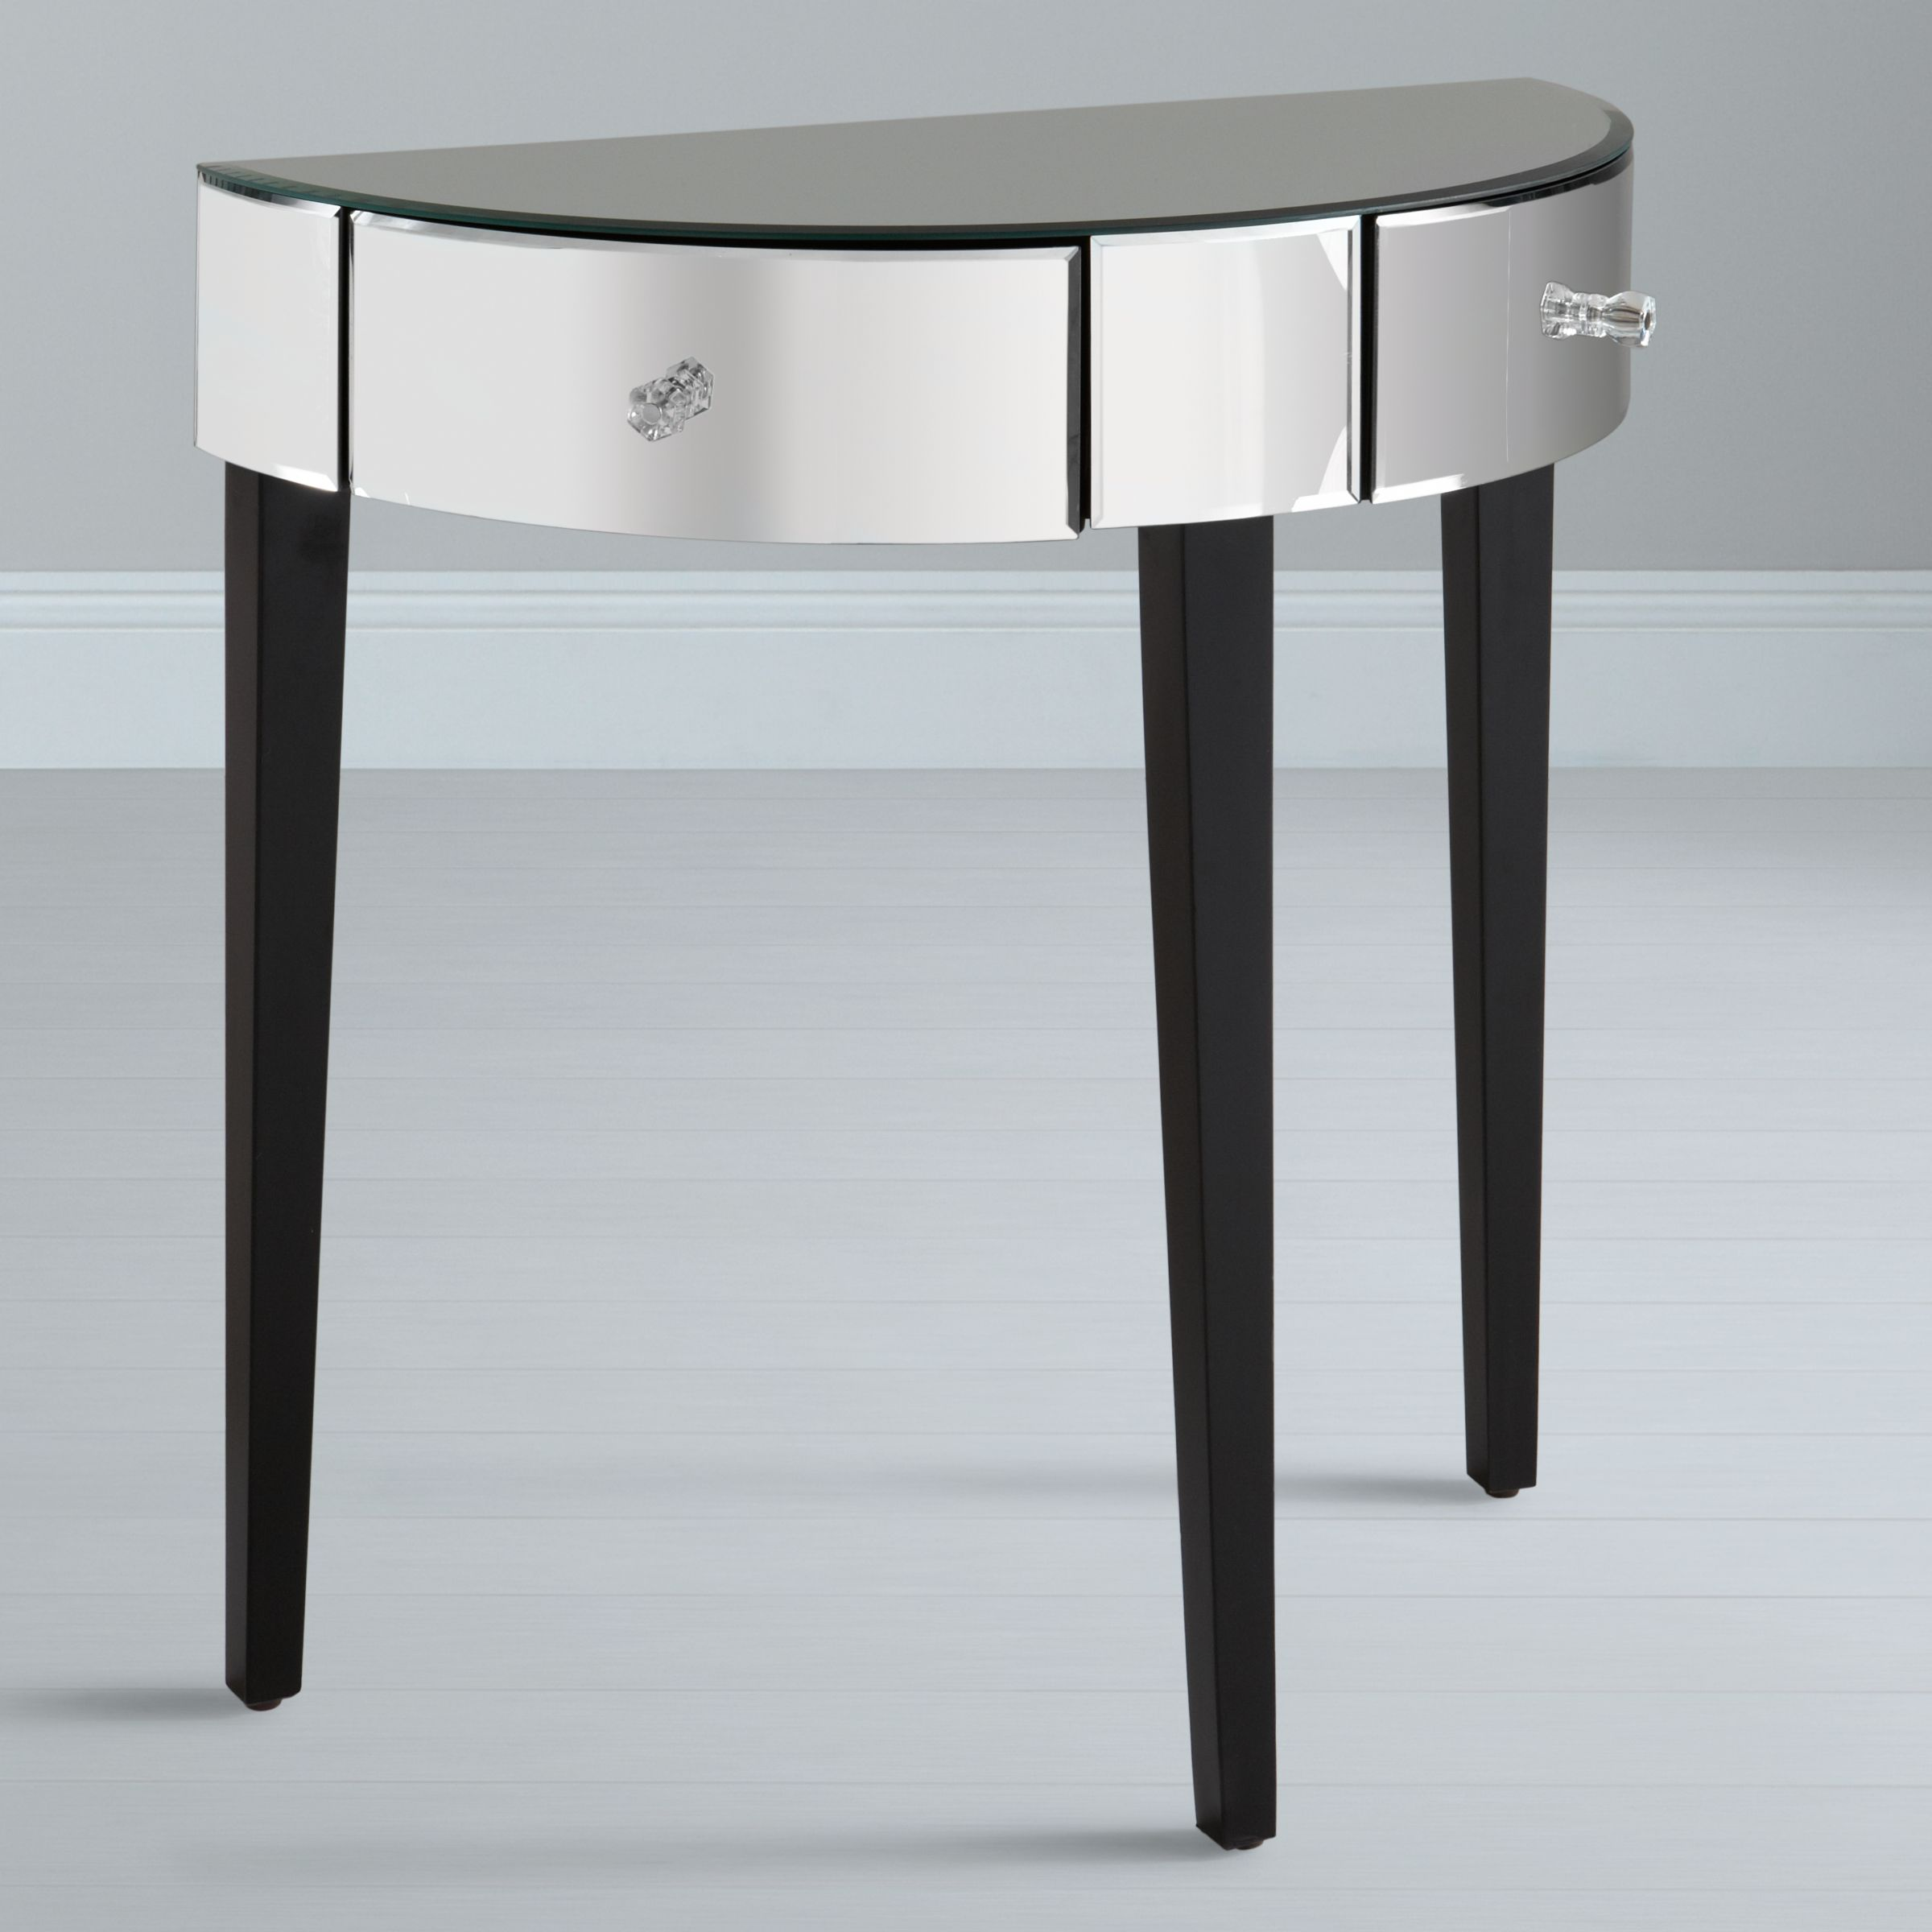 Johnlewis catalogue store shop online at johnlewis online john lewis astoria mirrored half moon console table at johnlewis geotapseo Image collections